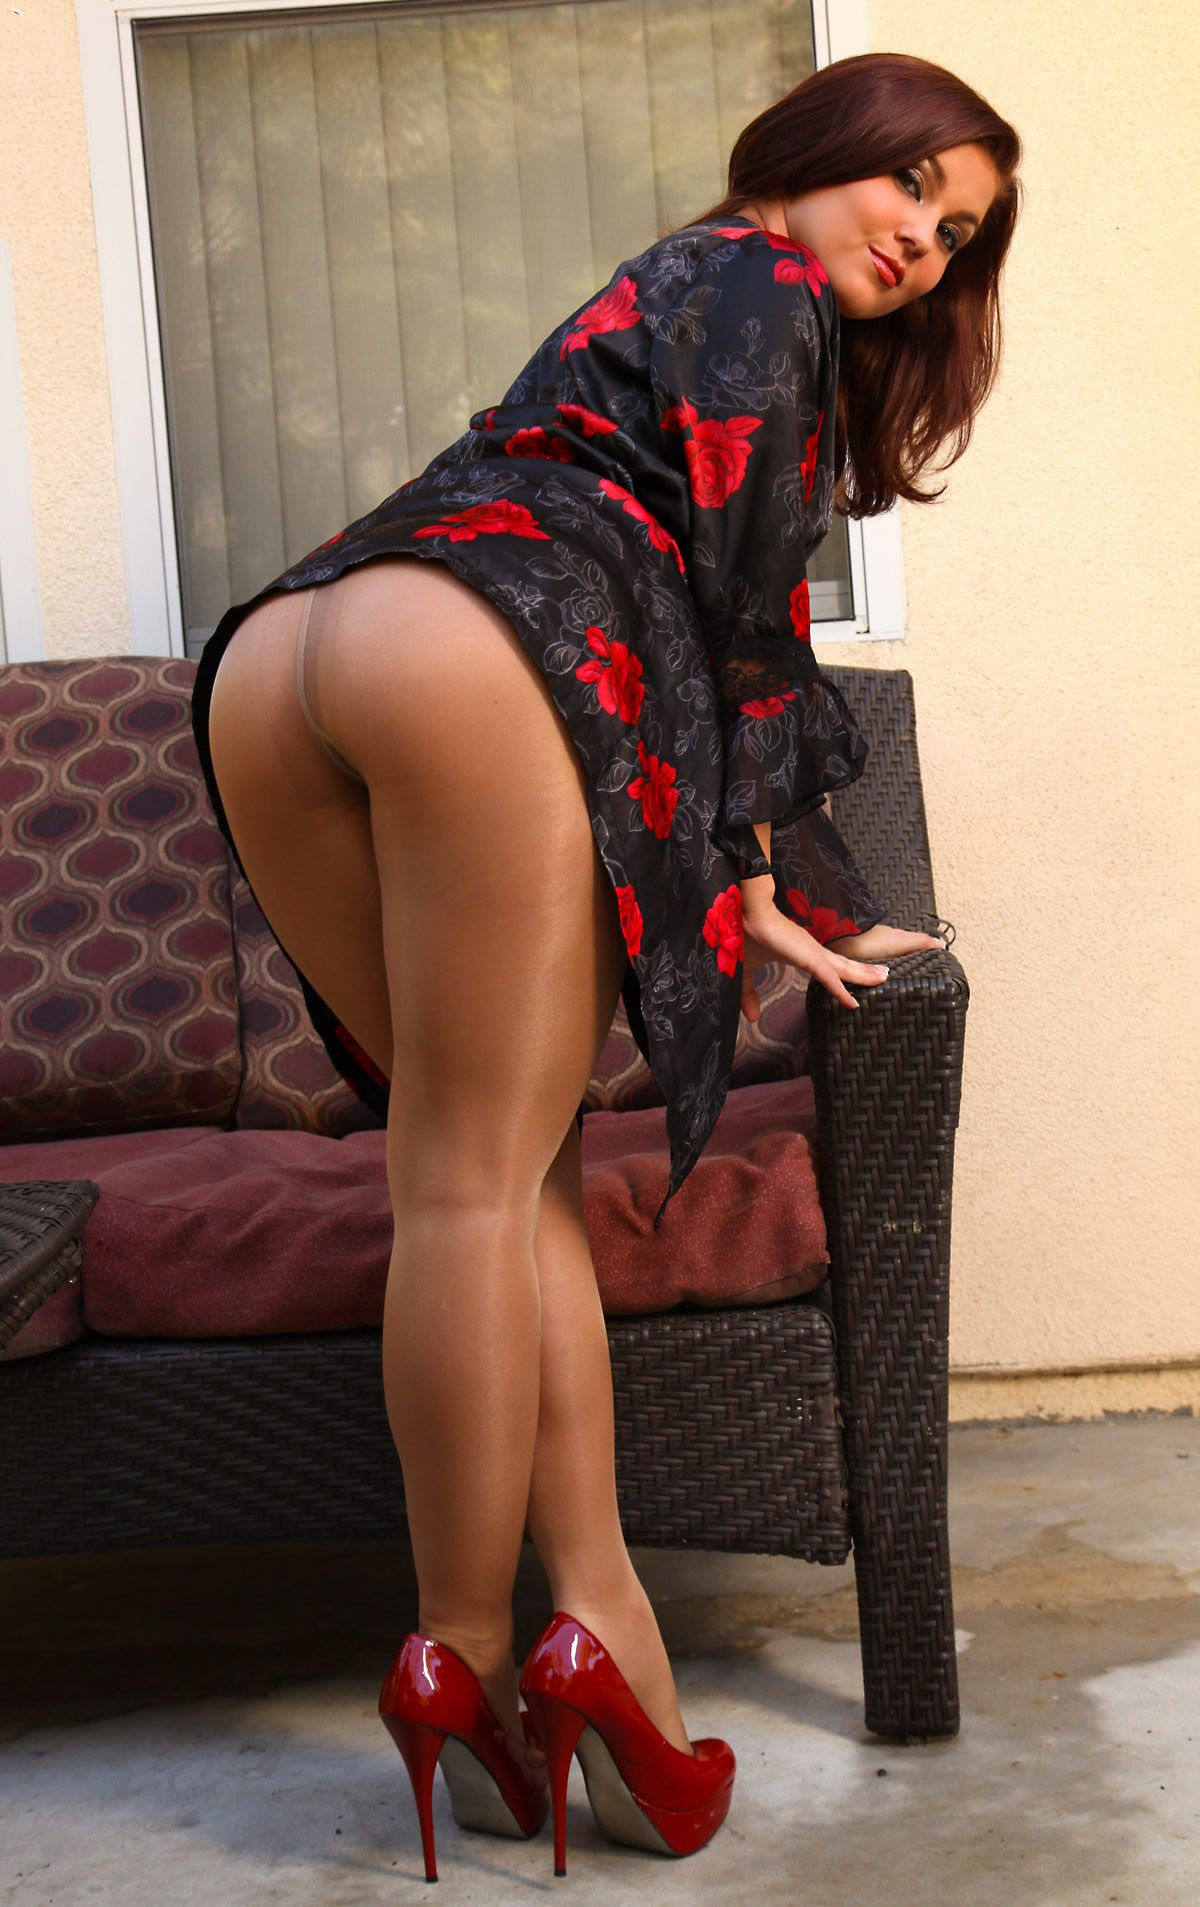 Pantyhose rear view